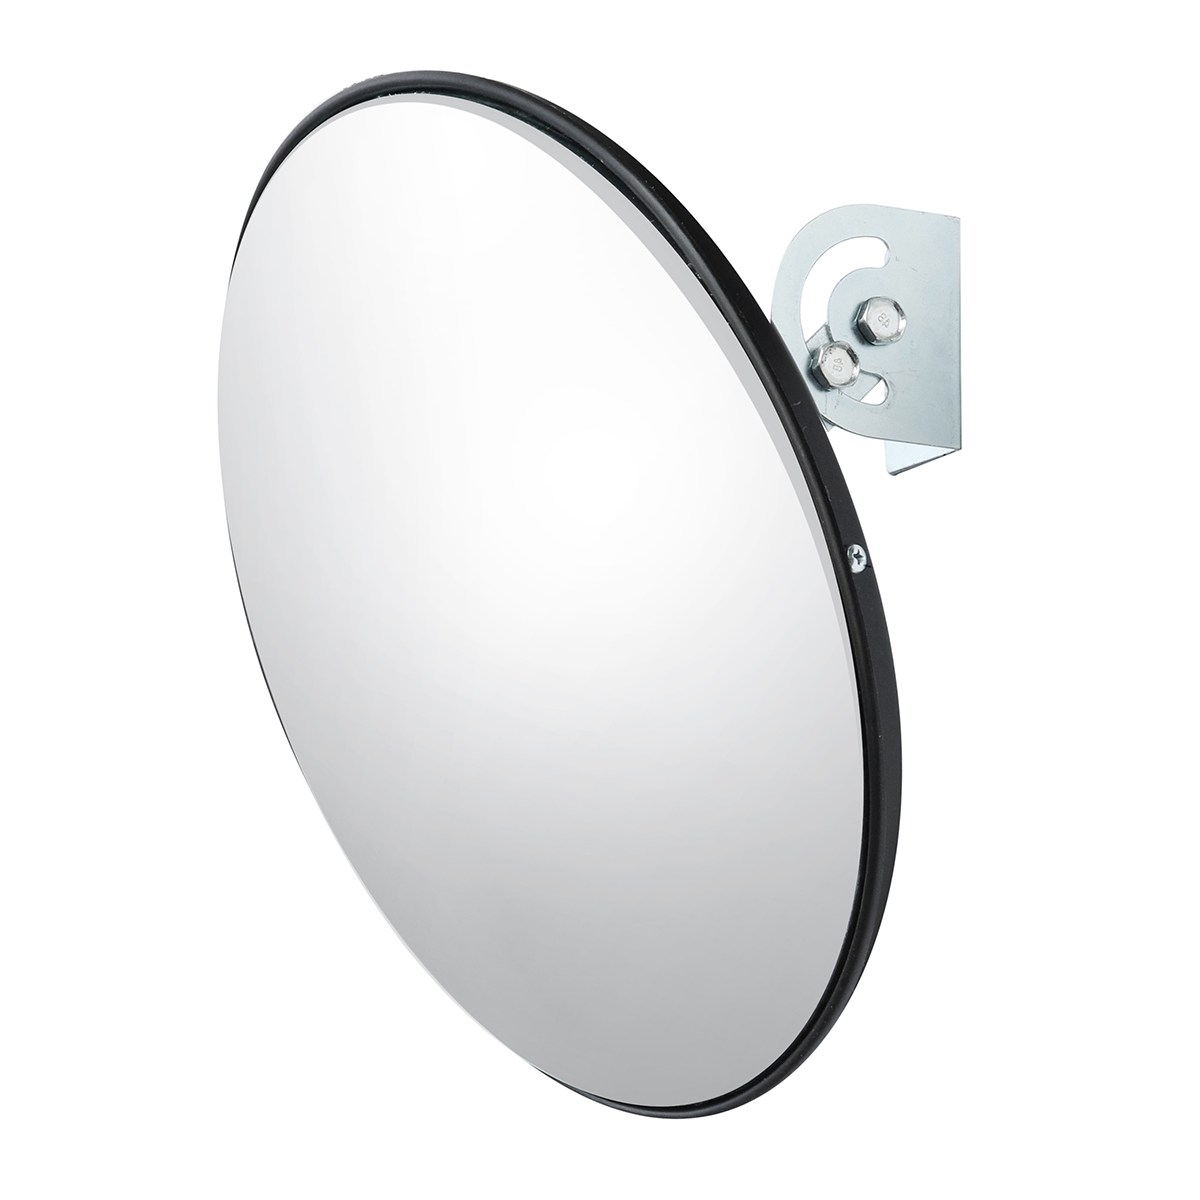 NEW Safurance 45 cm Wide Angle Curved Convex Security Road Mirror For Indoor Burglar Traffic Signal Roadway Safety<br>